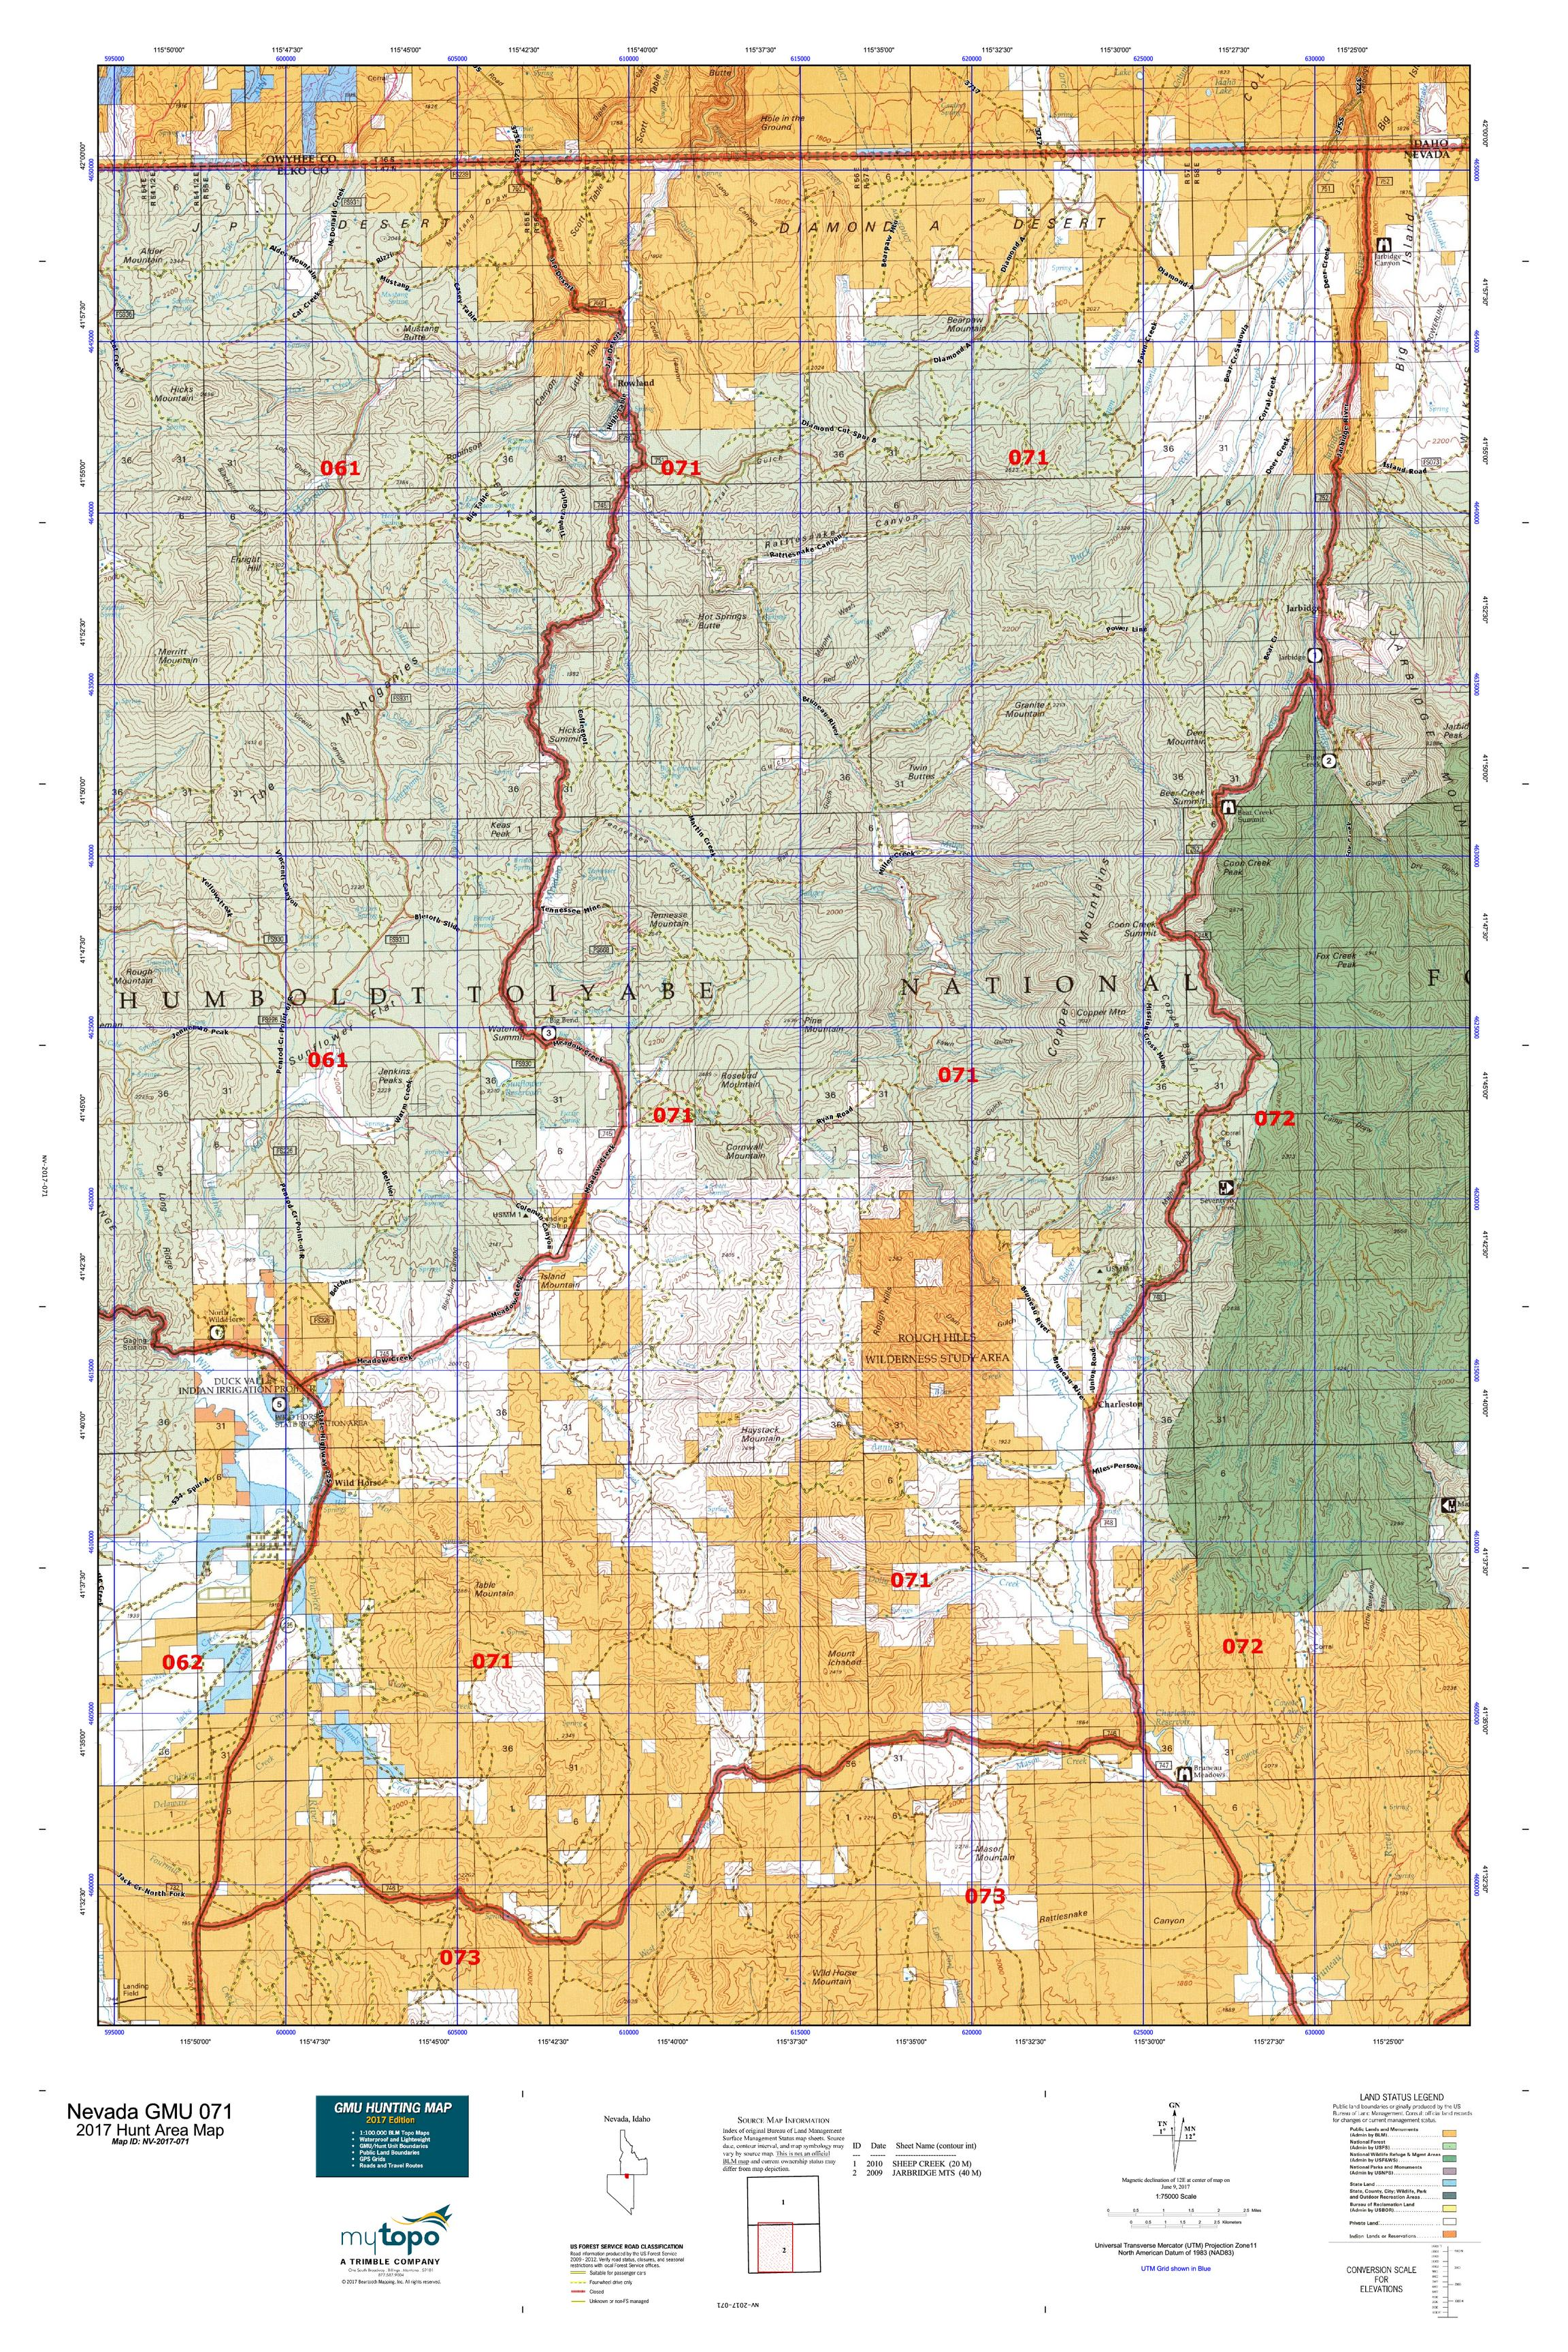 Nevada GMU Map MyTopo - Map of nv